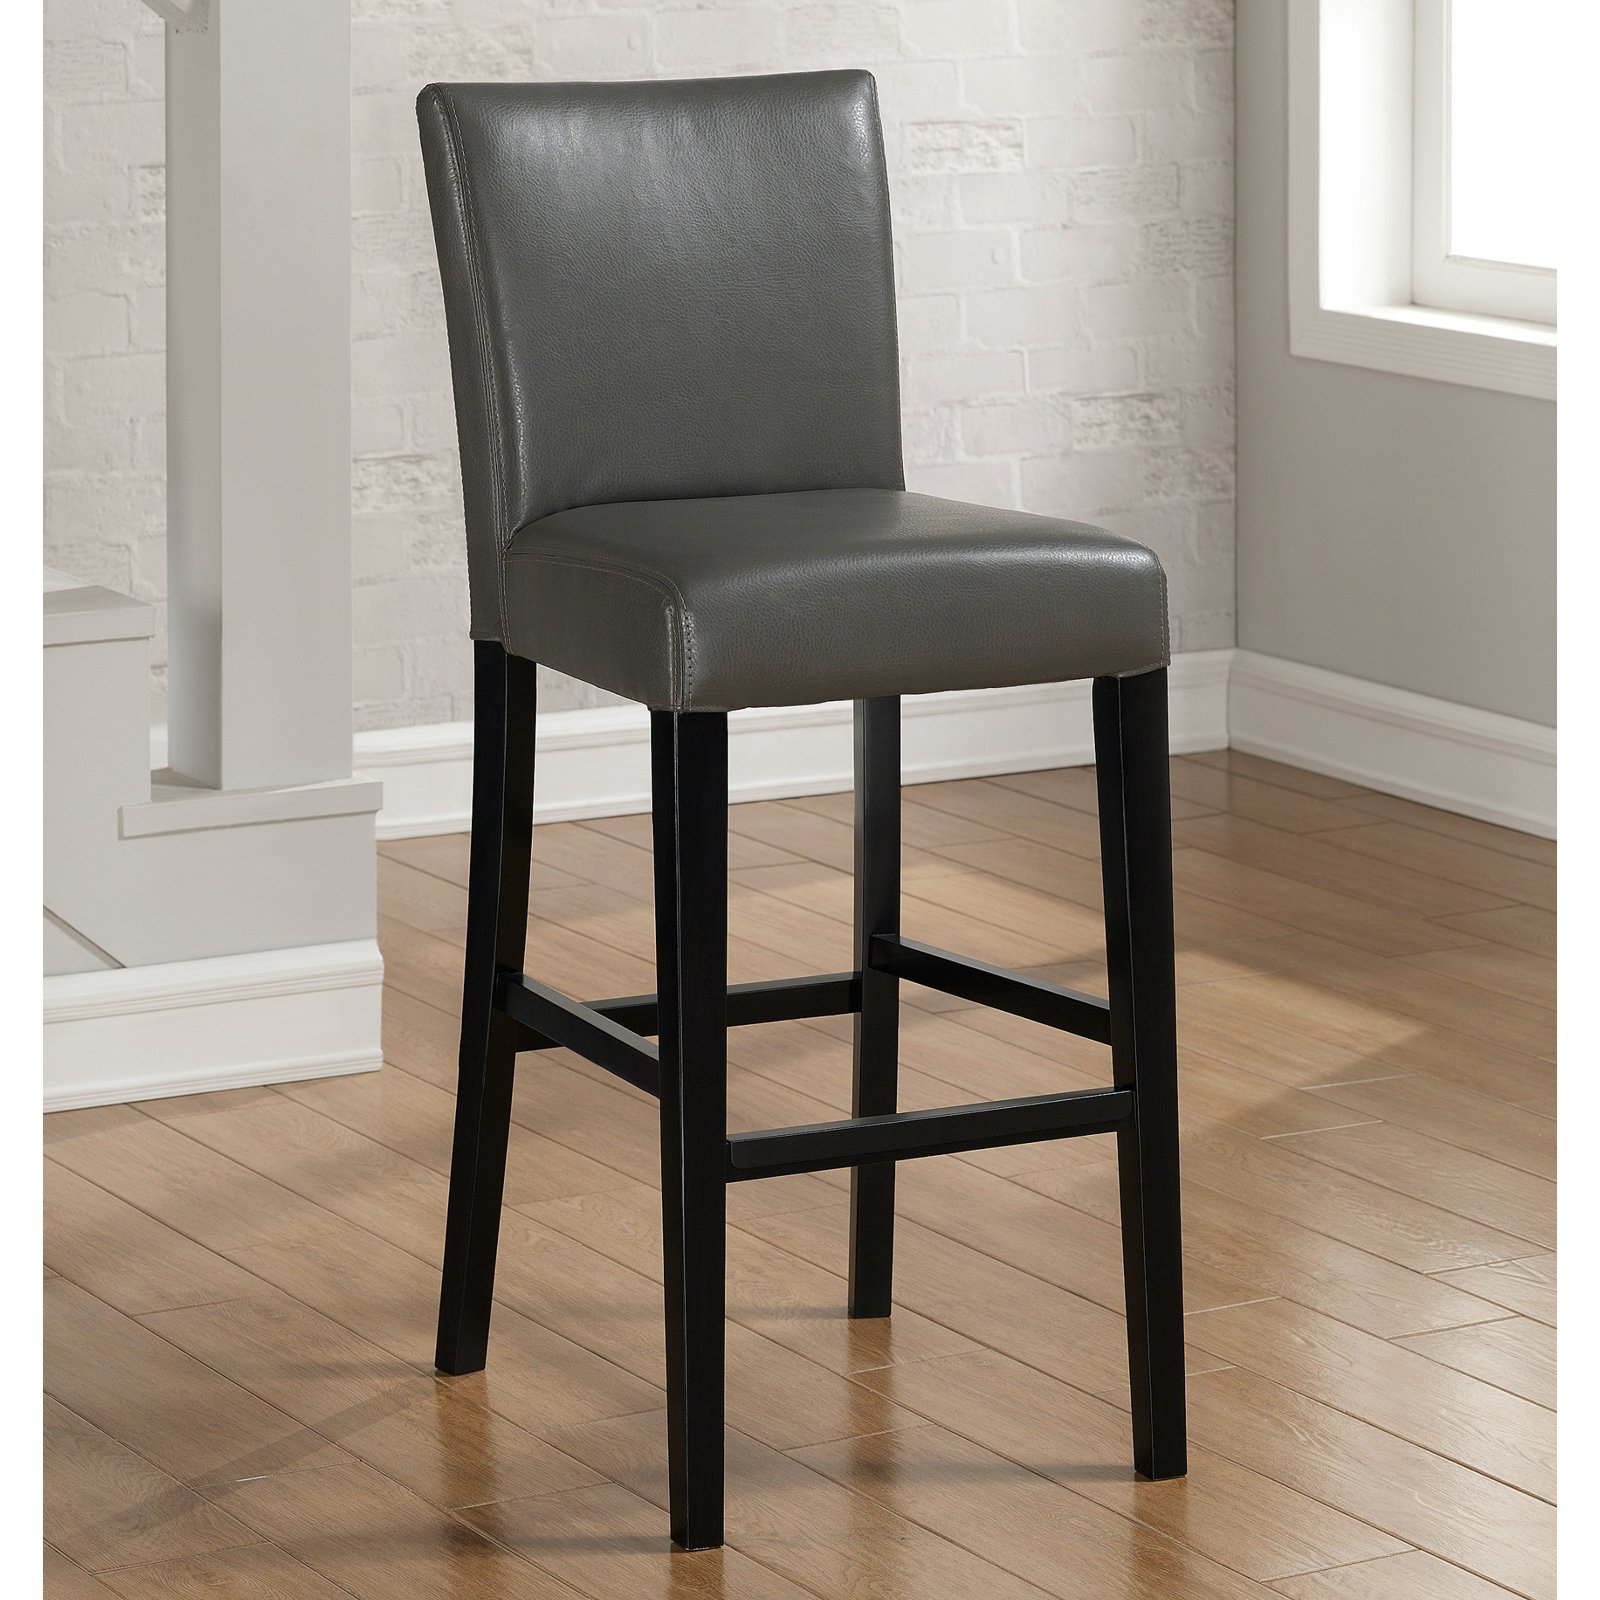 American Heritage Billiards Albany Counter Stool by American Heritage Billiards